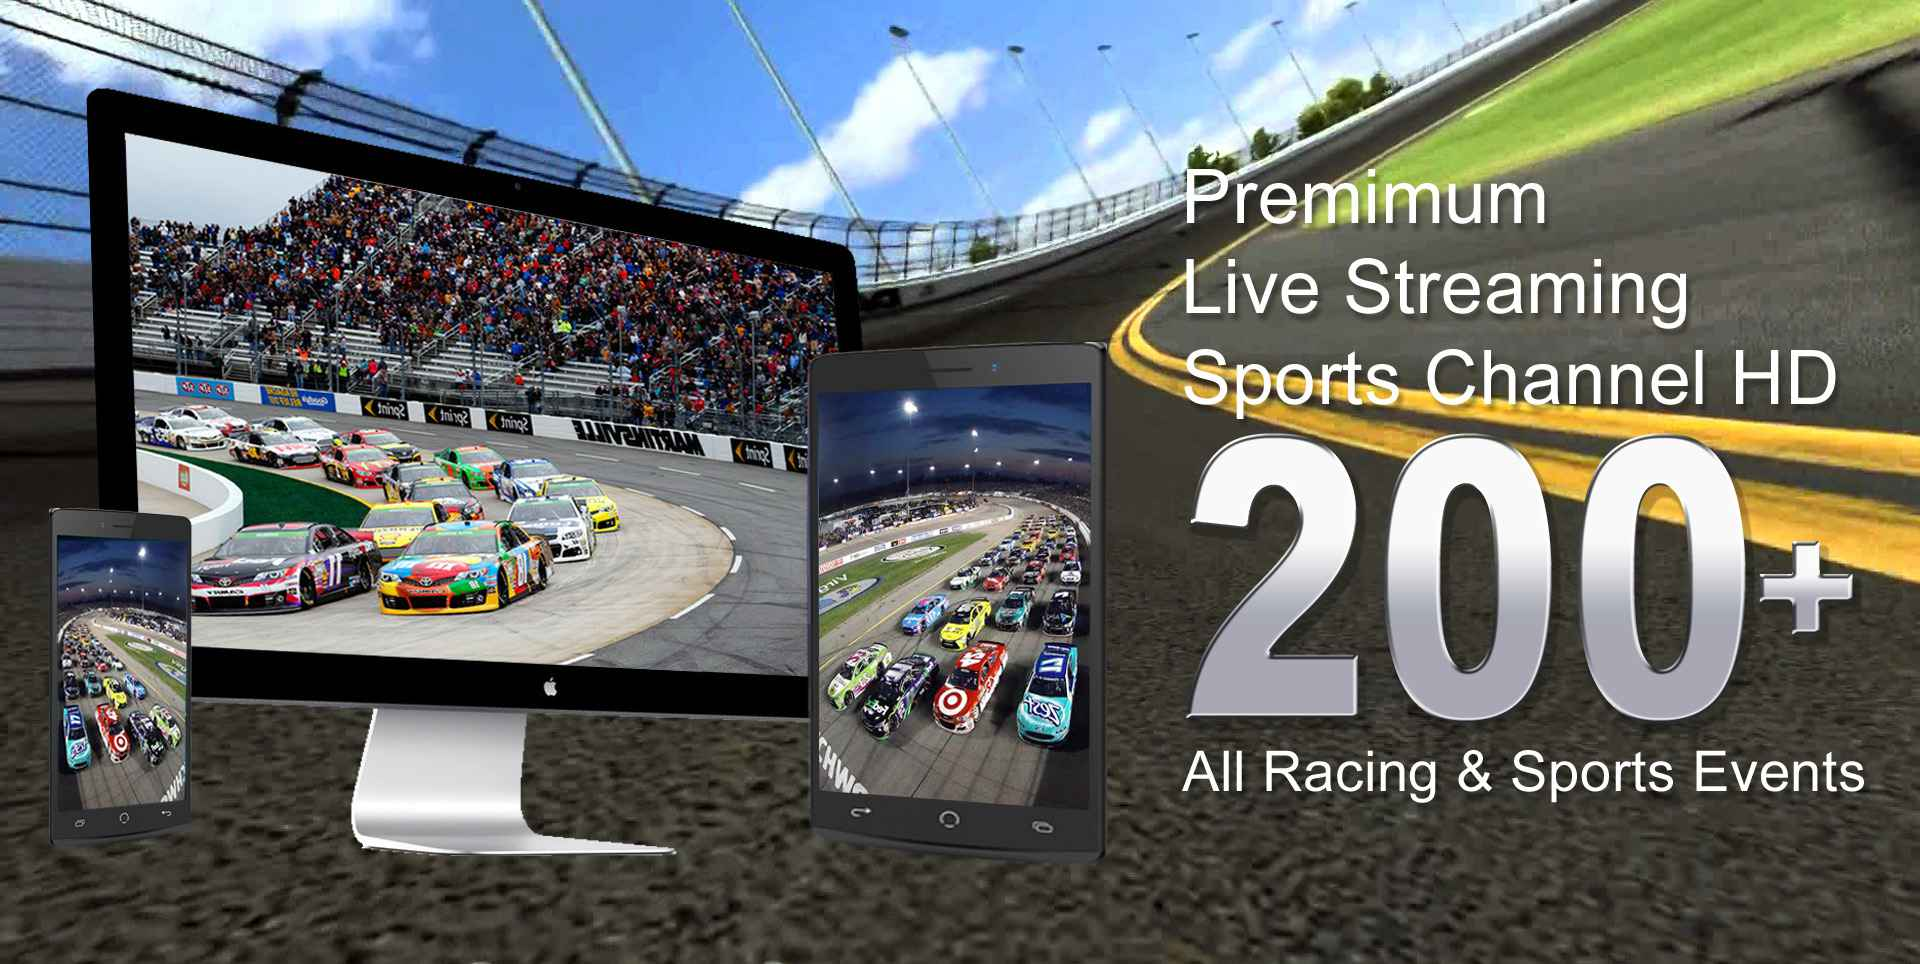 NASCAR Xfinity Series at Darlington